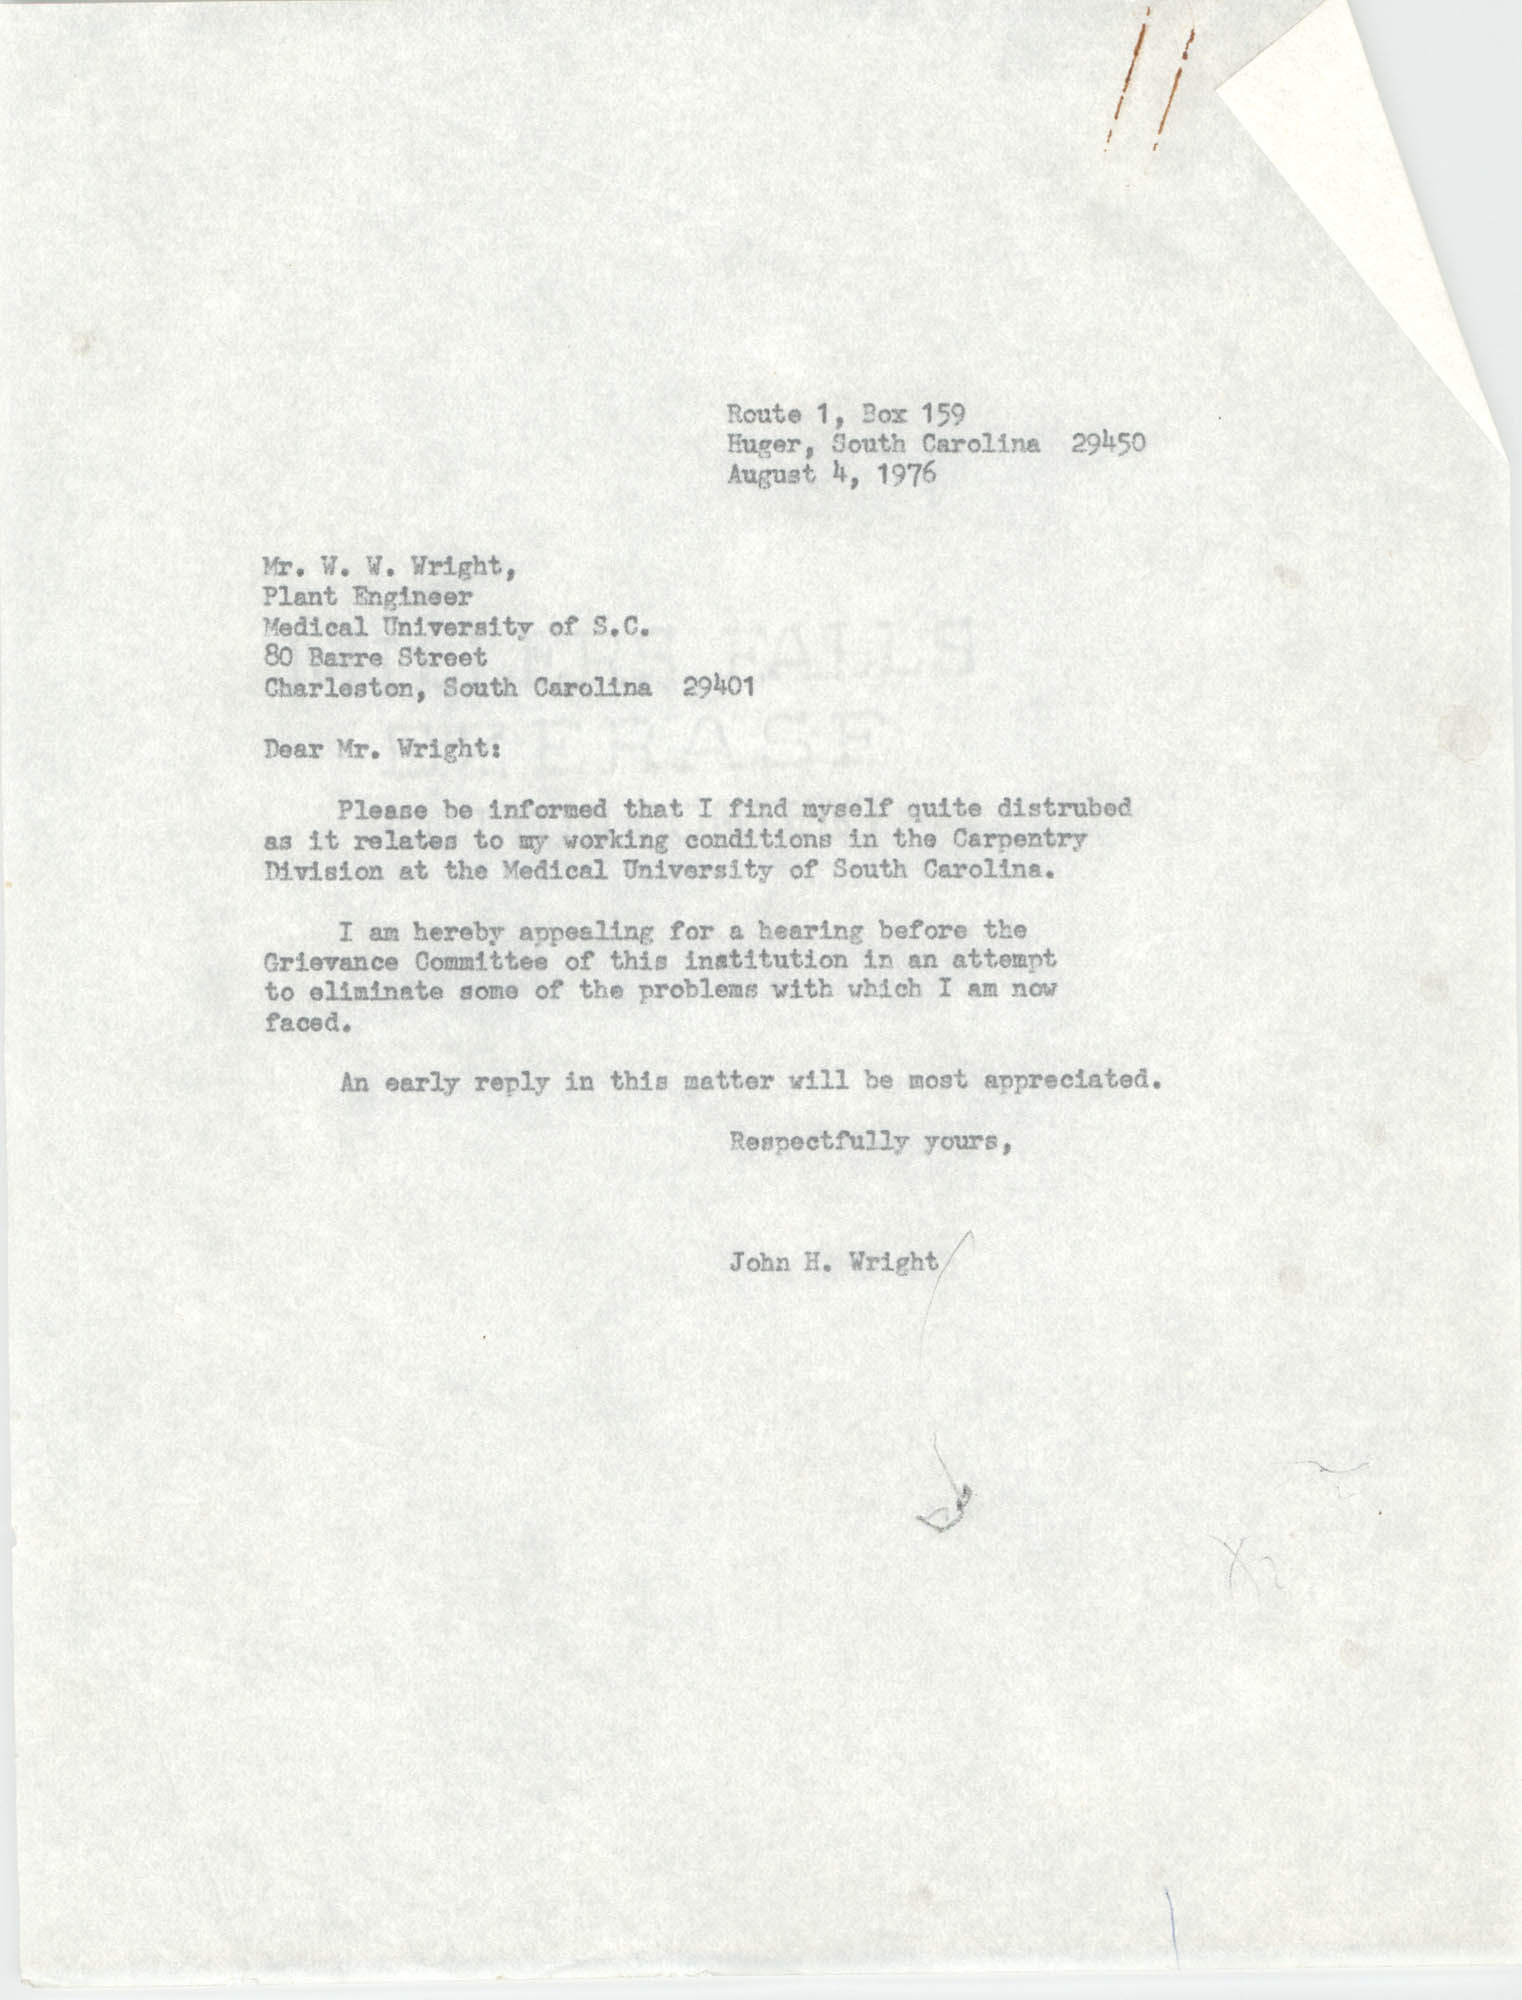 Letter from John H. Wright to W. W. Wright, August 4, 1976